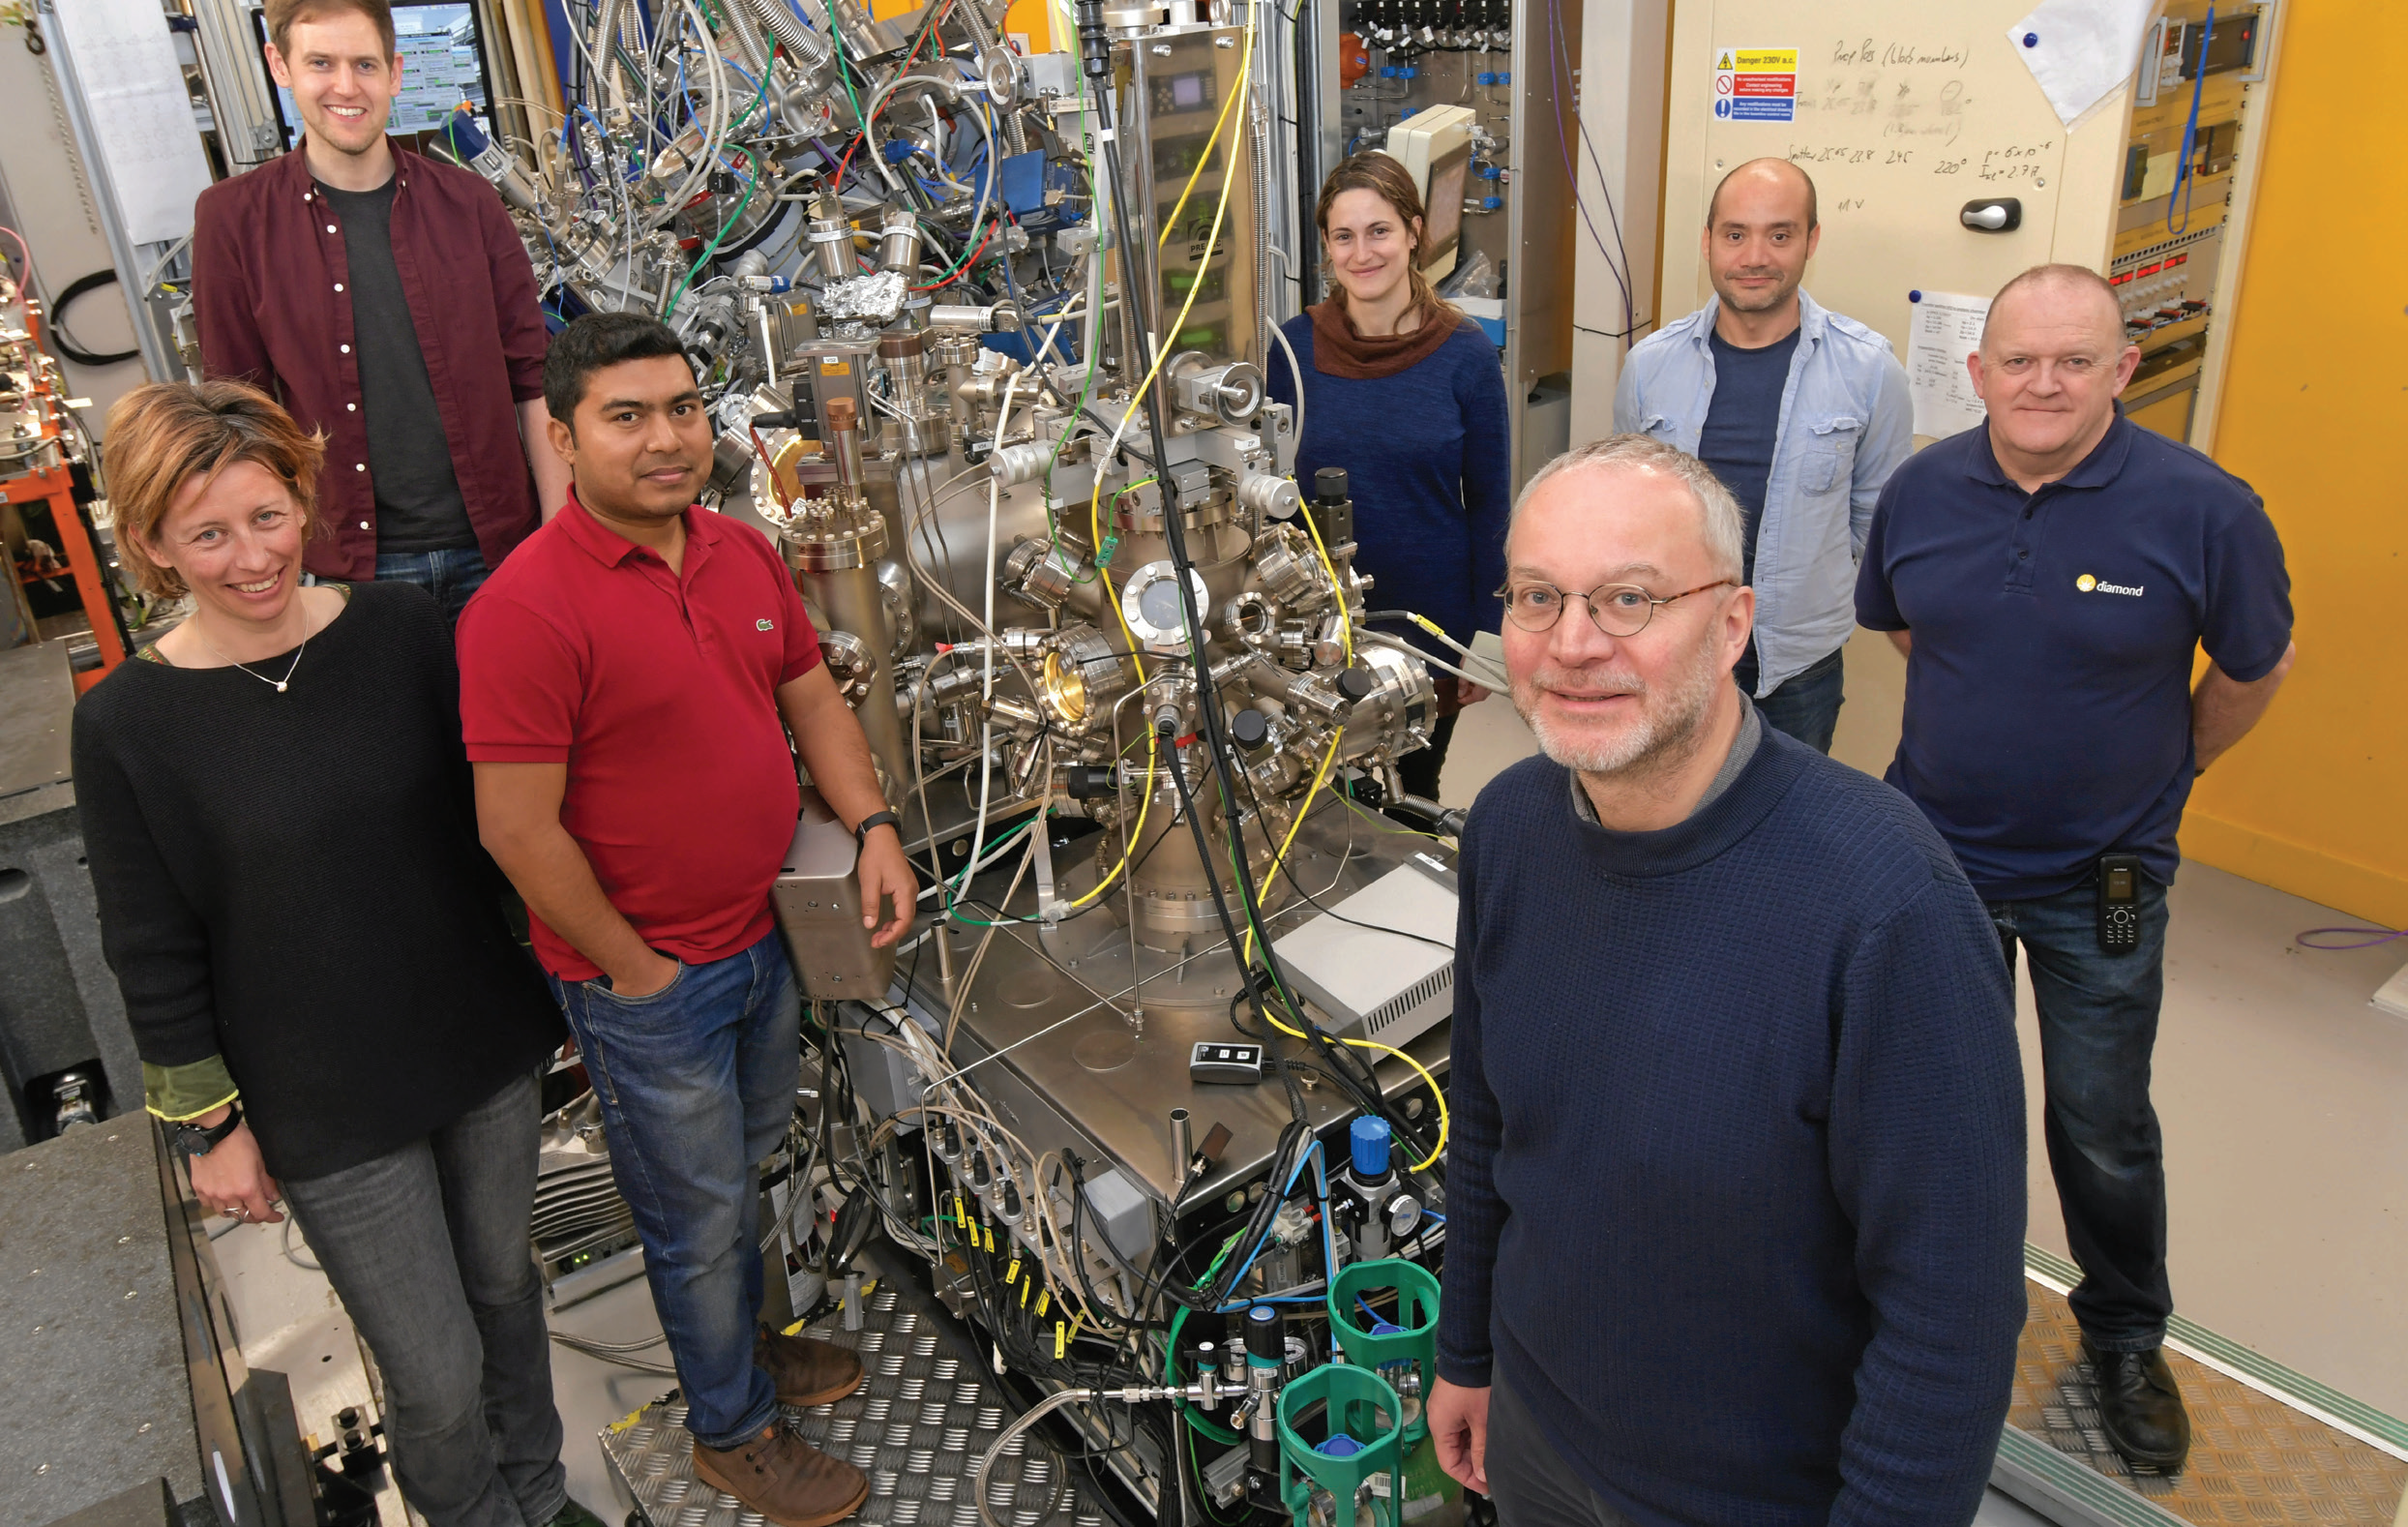 The VERSOX team on the beamline, from left to right: Federica Venturini, Dave Grinter, Kanak Roy, Pilar Ferrer, Georg Held (PBS), Wilson Quevedo Garzon, and Andrew Watts.